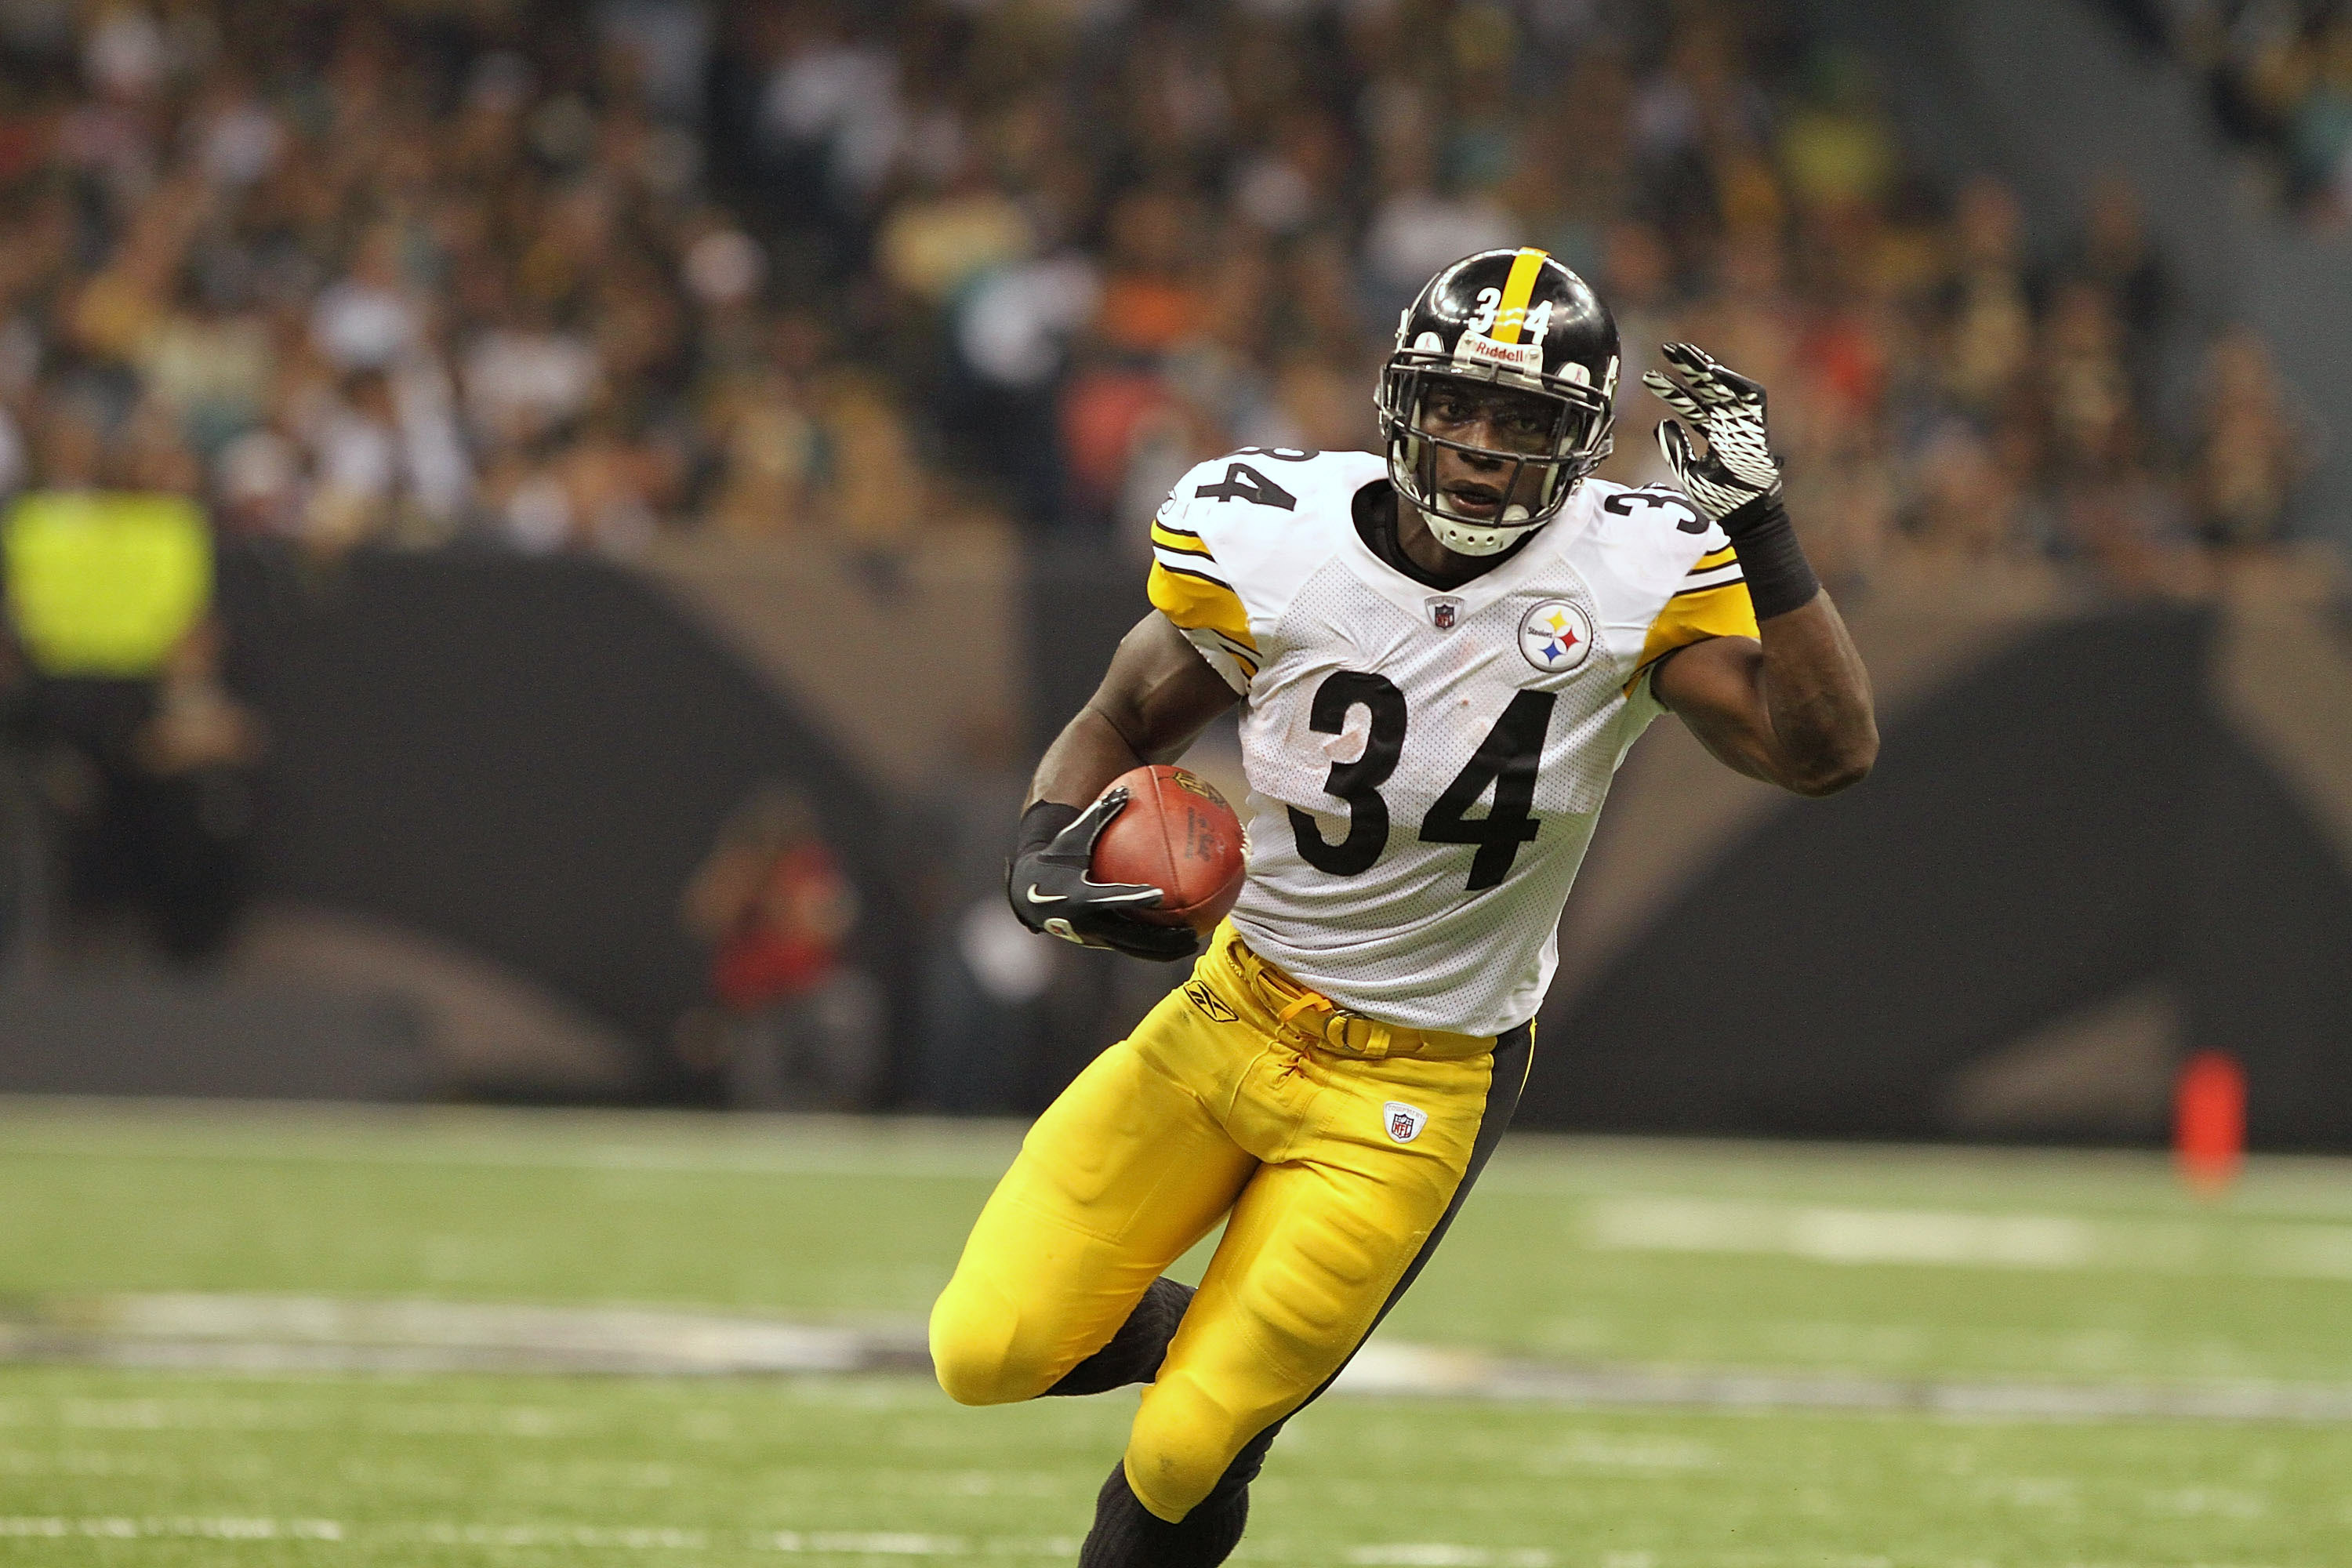 NEW ORLEANS, LA - OCTOBER 31: Rashard Mendenhall #34 of the Pittsburgh Steelers in action during the game against the New Orleans Saints at the Louisiana Superdome on October 31, 2010 in New Orleans, Louisiana. (Photo by Matthew Sharpe/Getty Images)